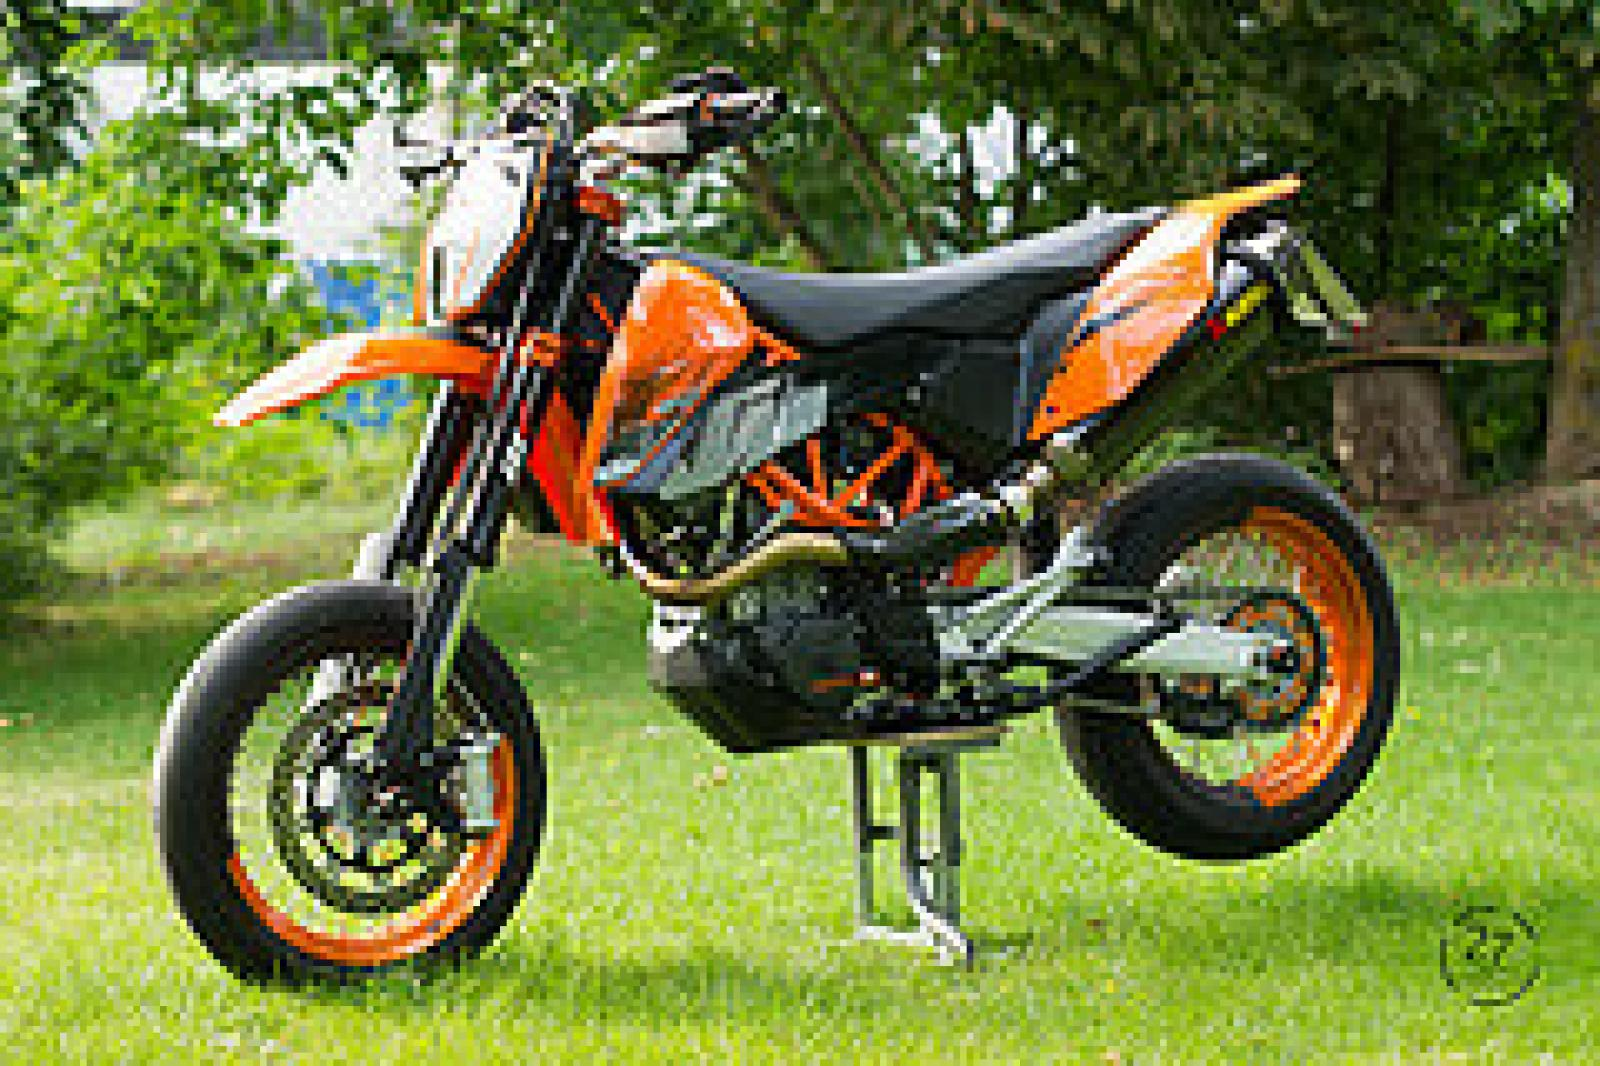 ktm ktm 640 lc4 smc orange moto zombdrive com. Black Bedroom Furniture Sets. Home Design Ideas